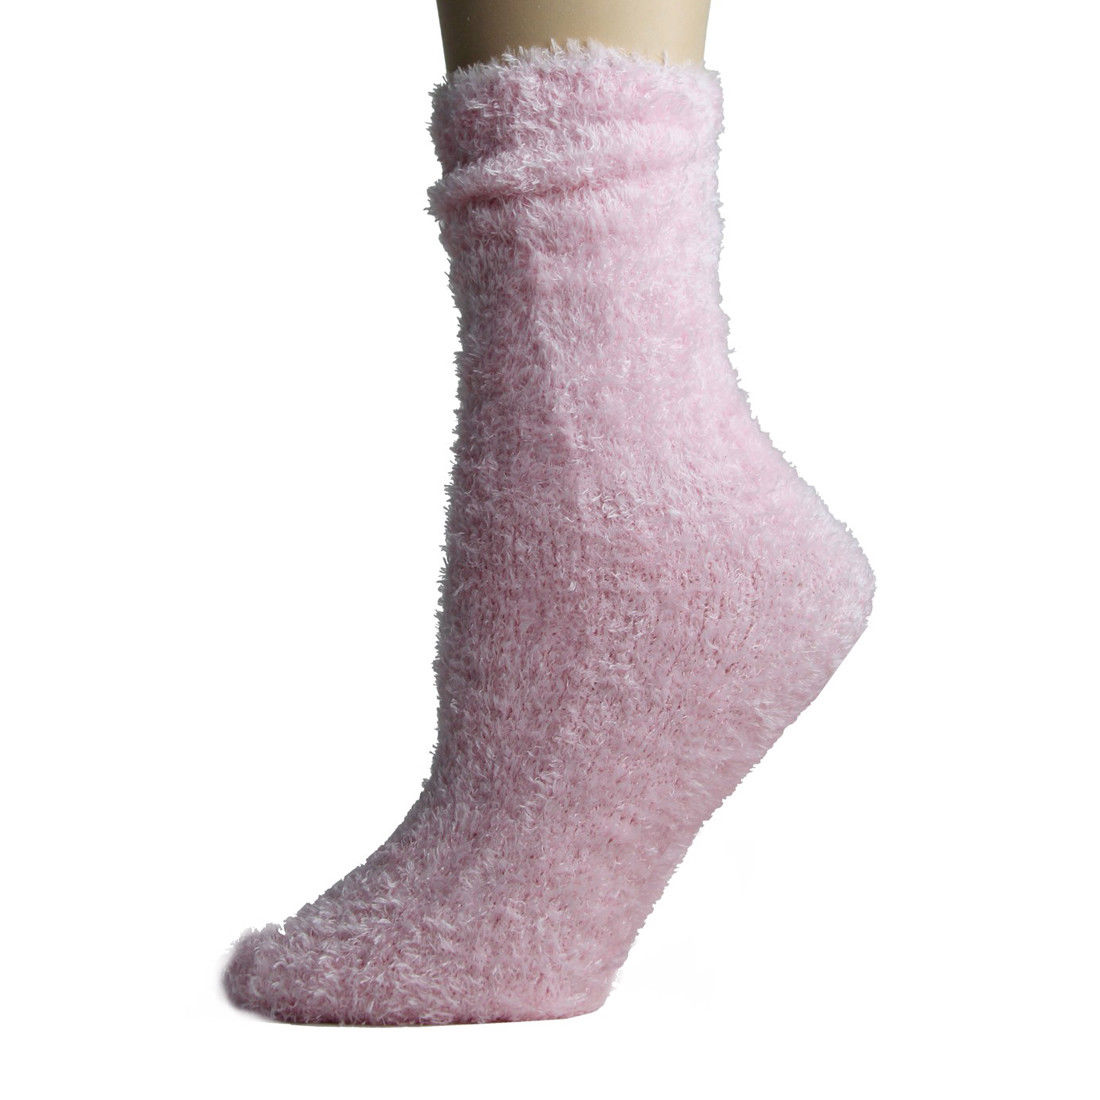 Fuzzy Foot Traffic Microfiber Non-Skid Socks Pink